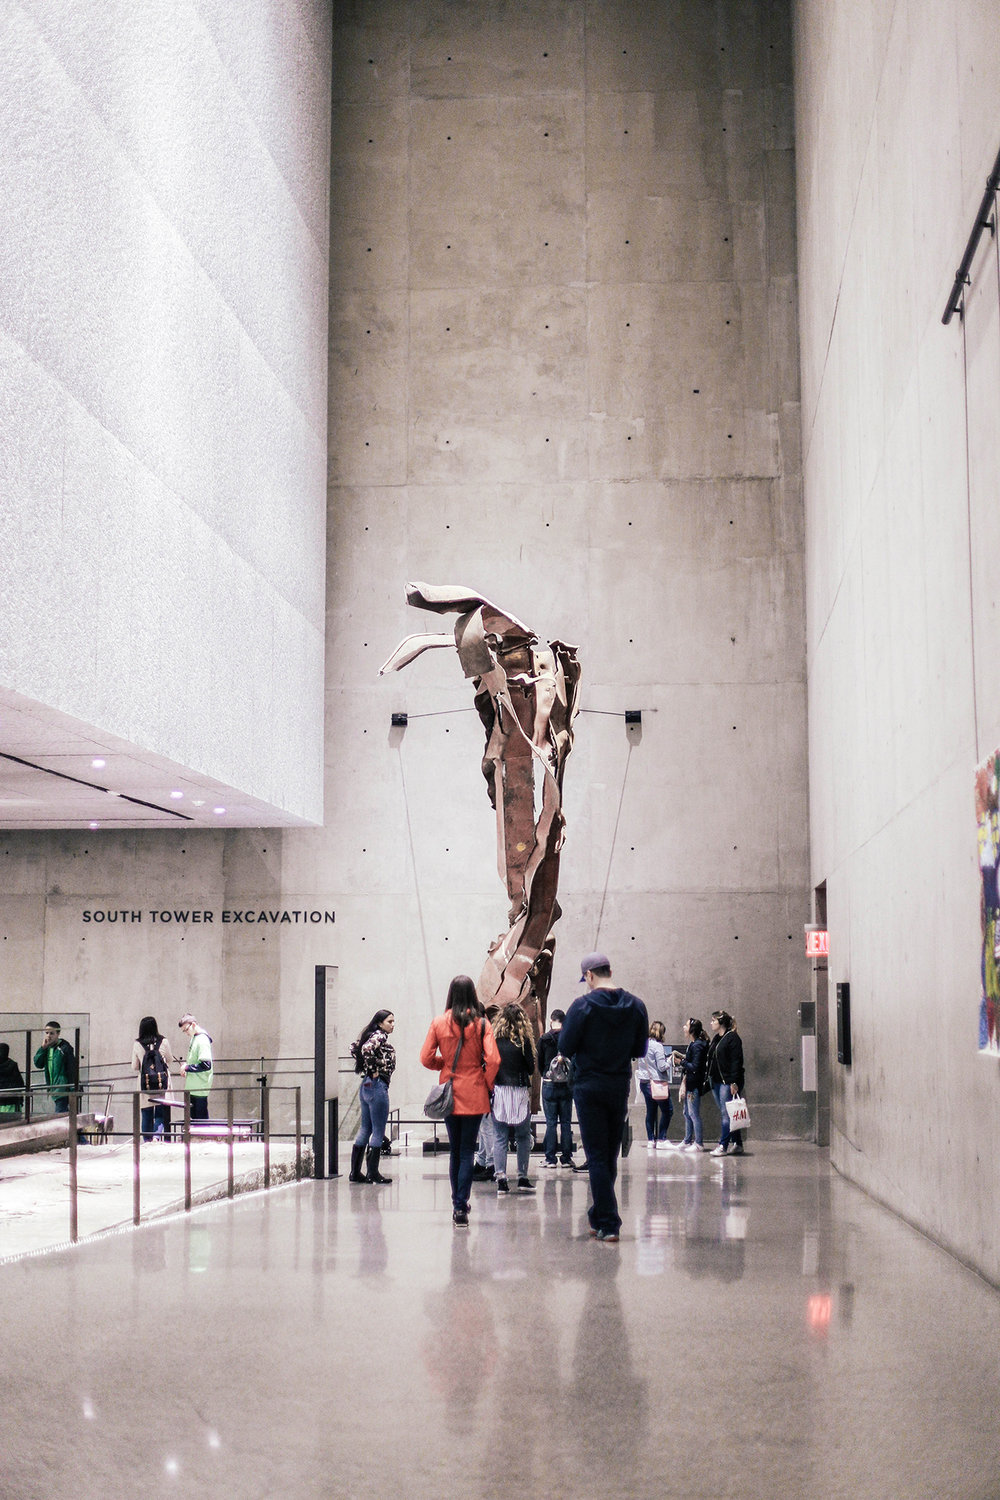 9/11 Memorial Museum, New York | trudygeorgina.com